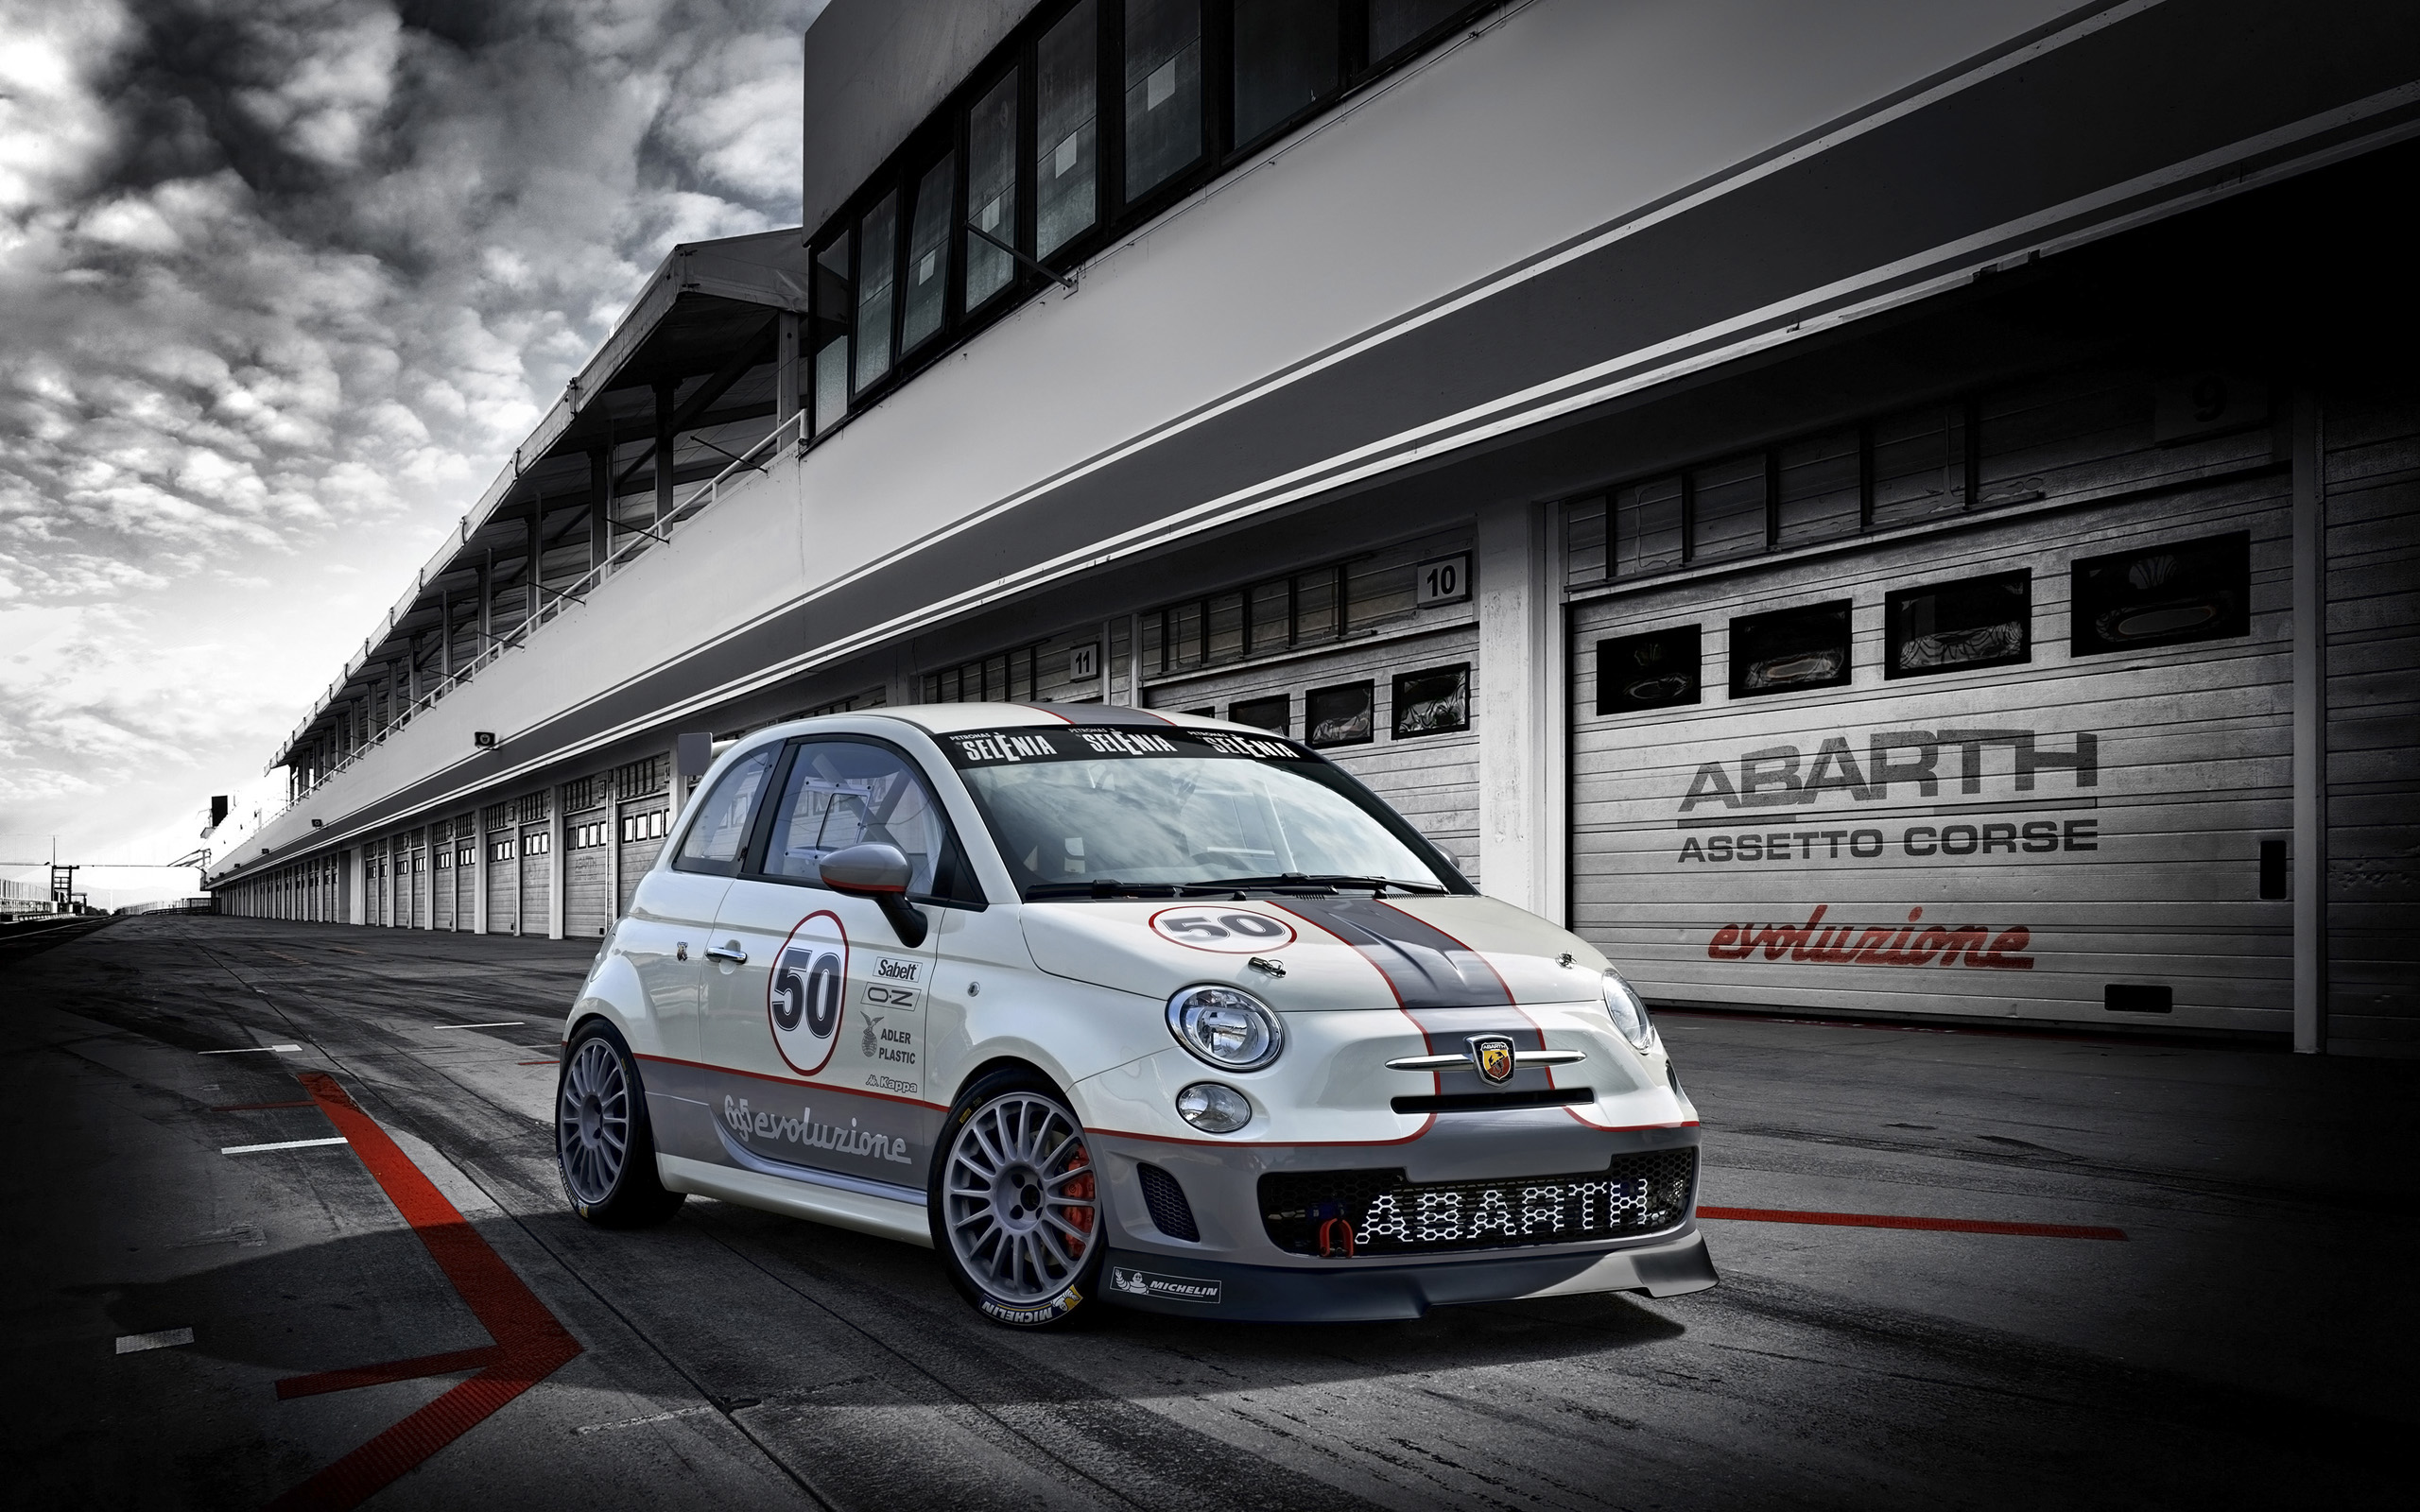 2014 Abarth 695 Assetto Corse Wallpaper | HD Car Wallpapers